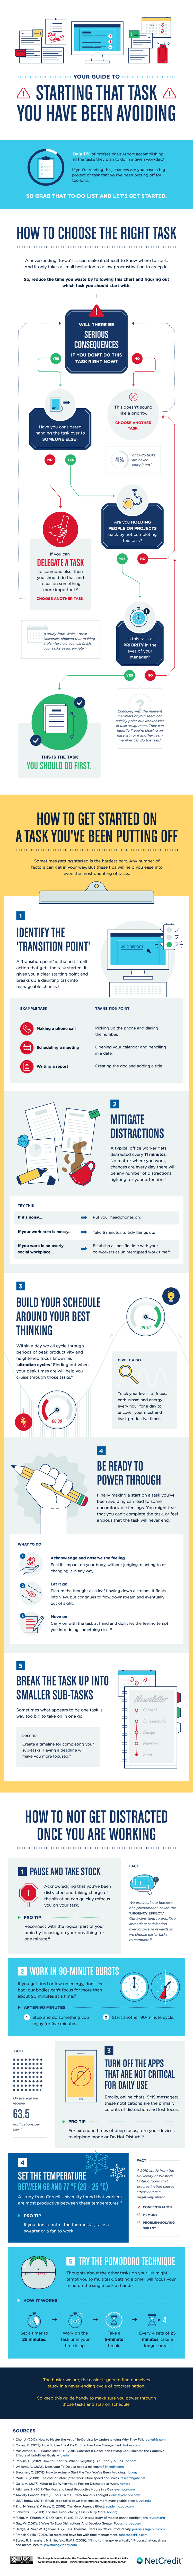 Infographic lists productivity tips and advice